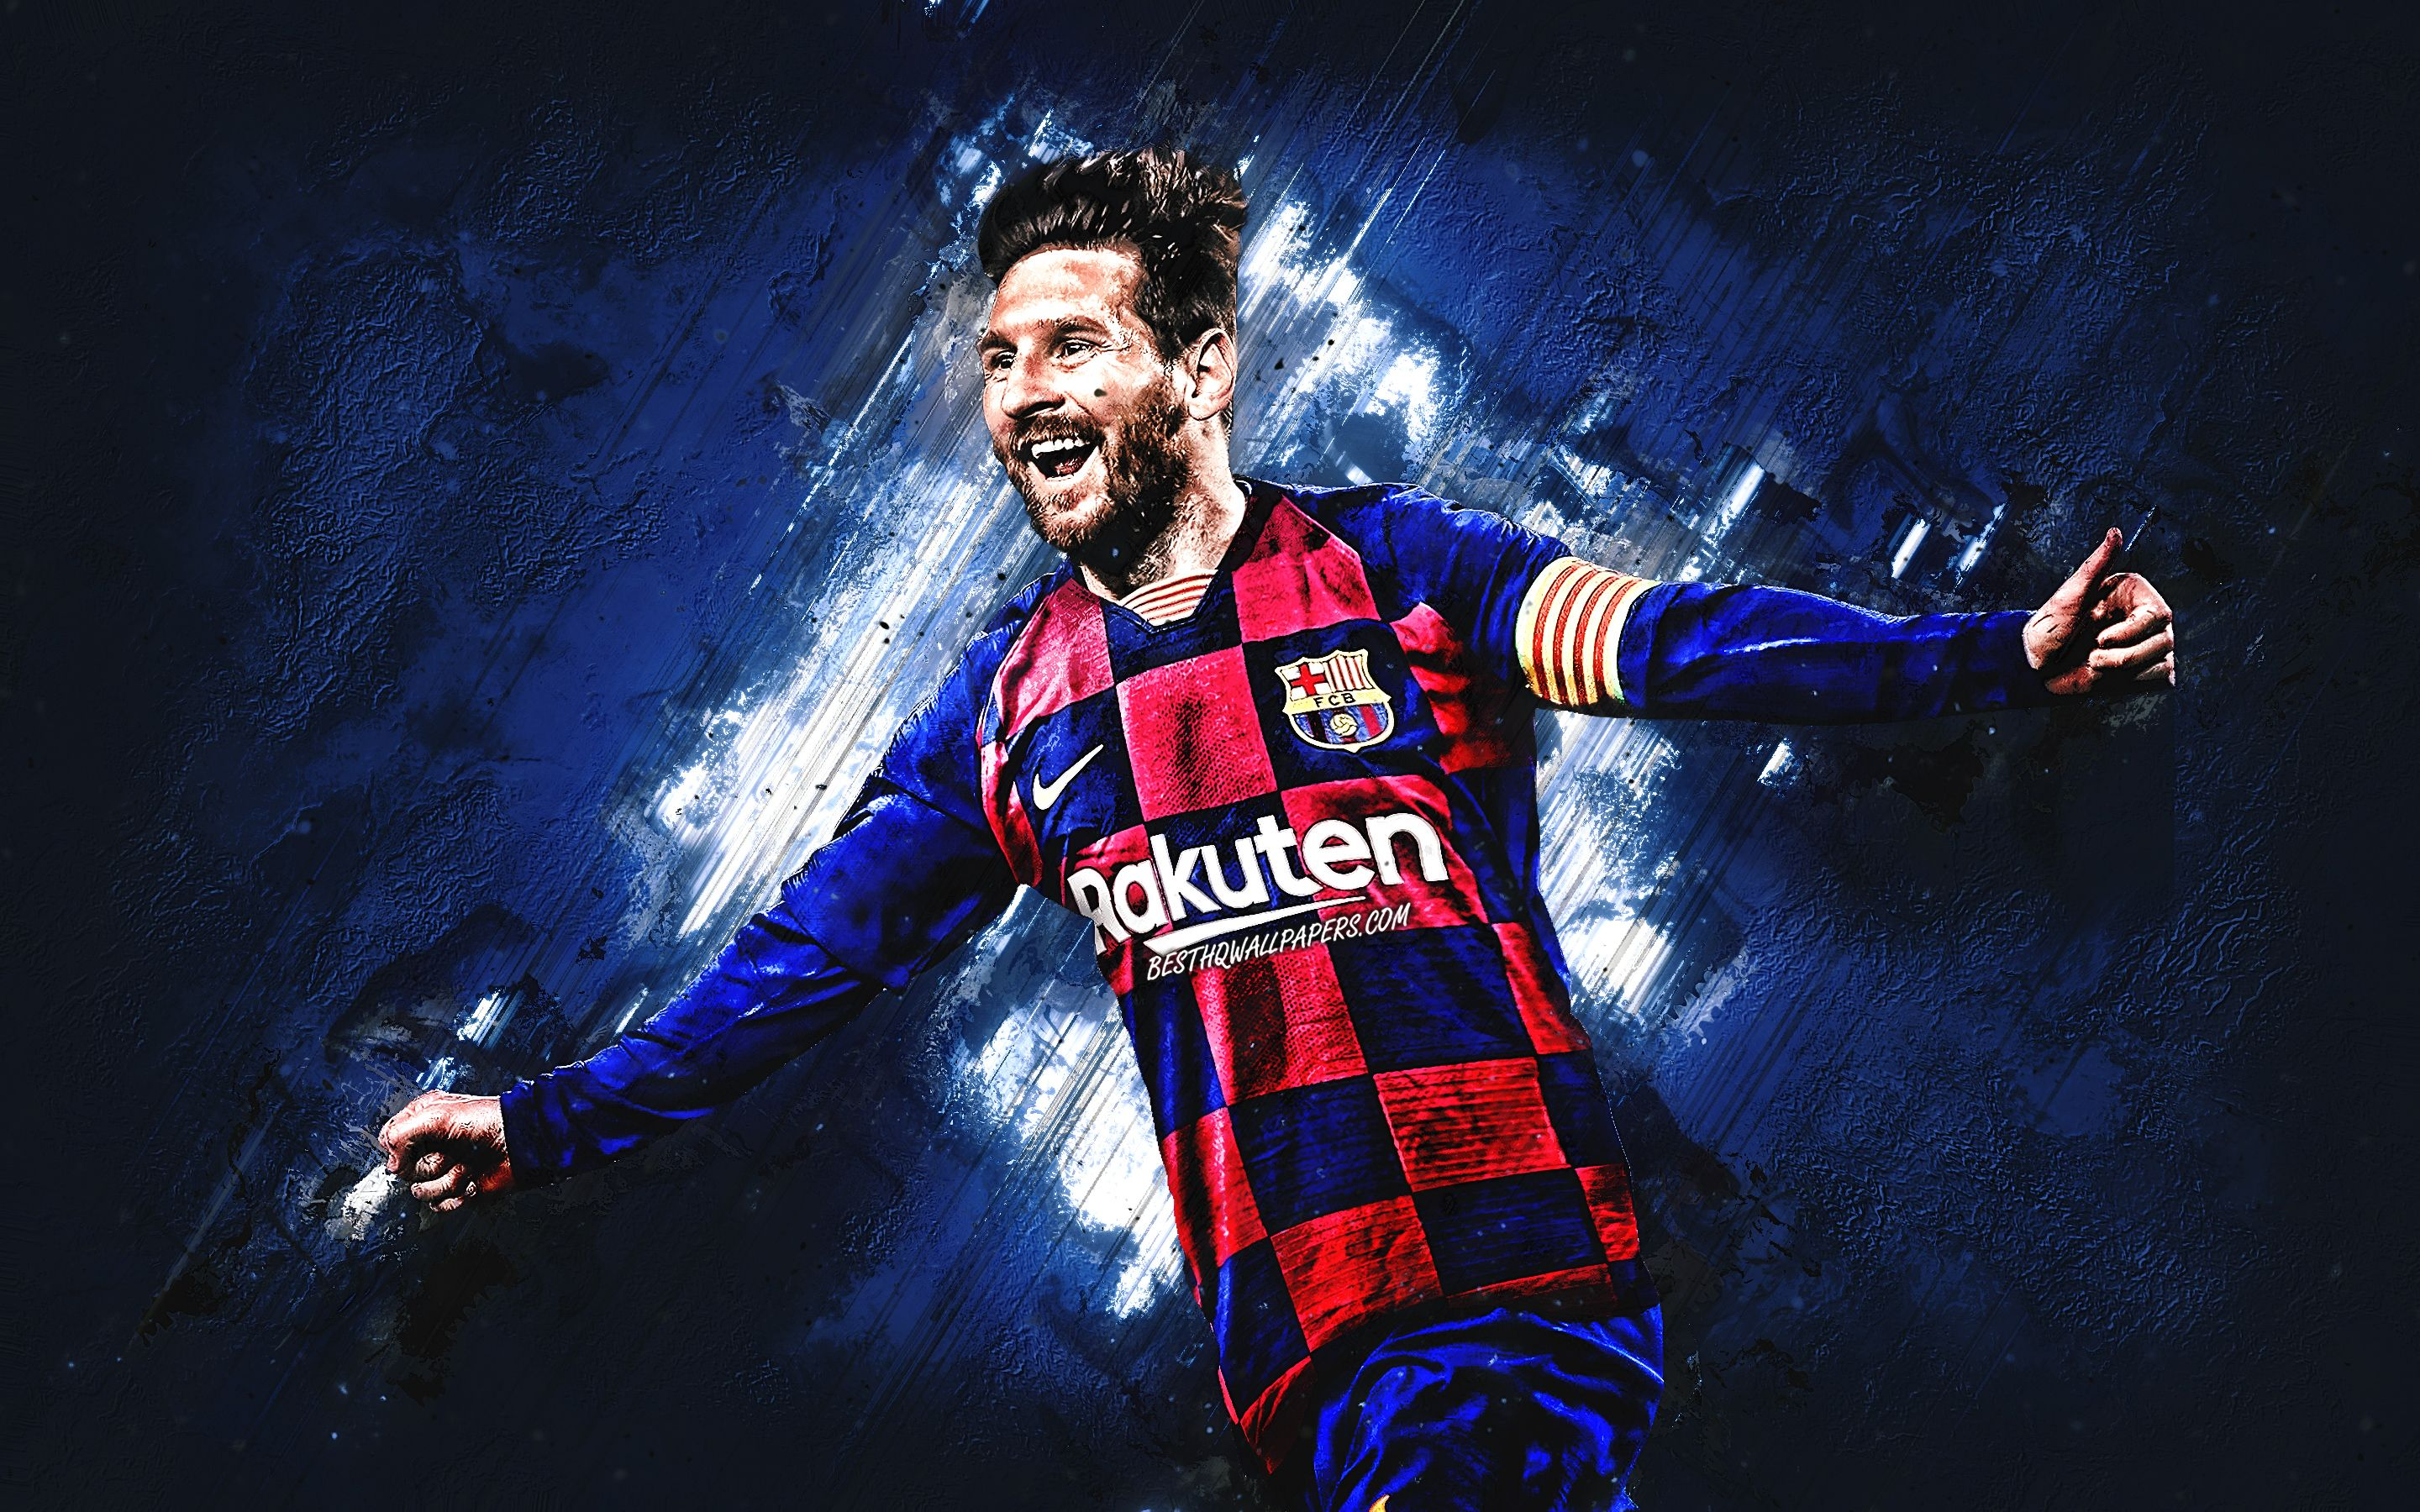 Messi Wallpaper 2020 Computer